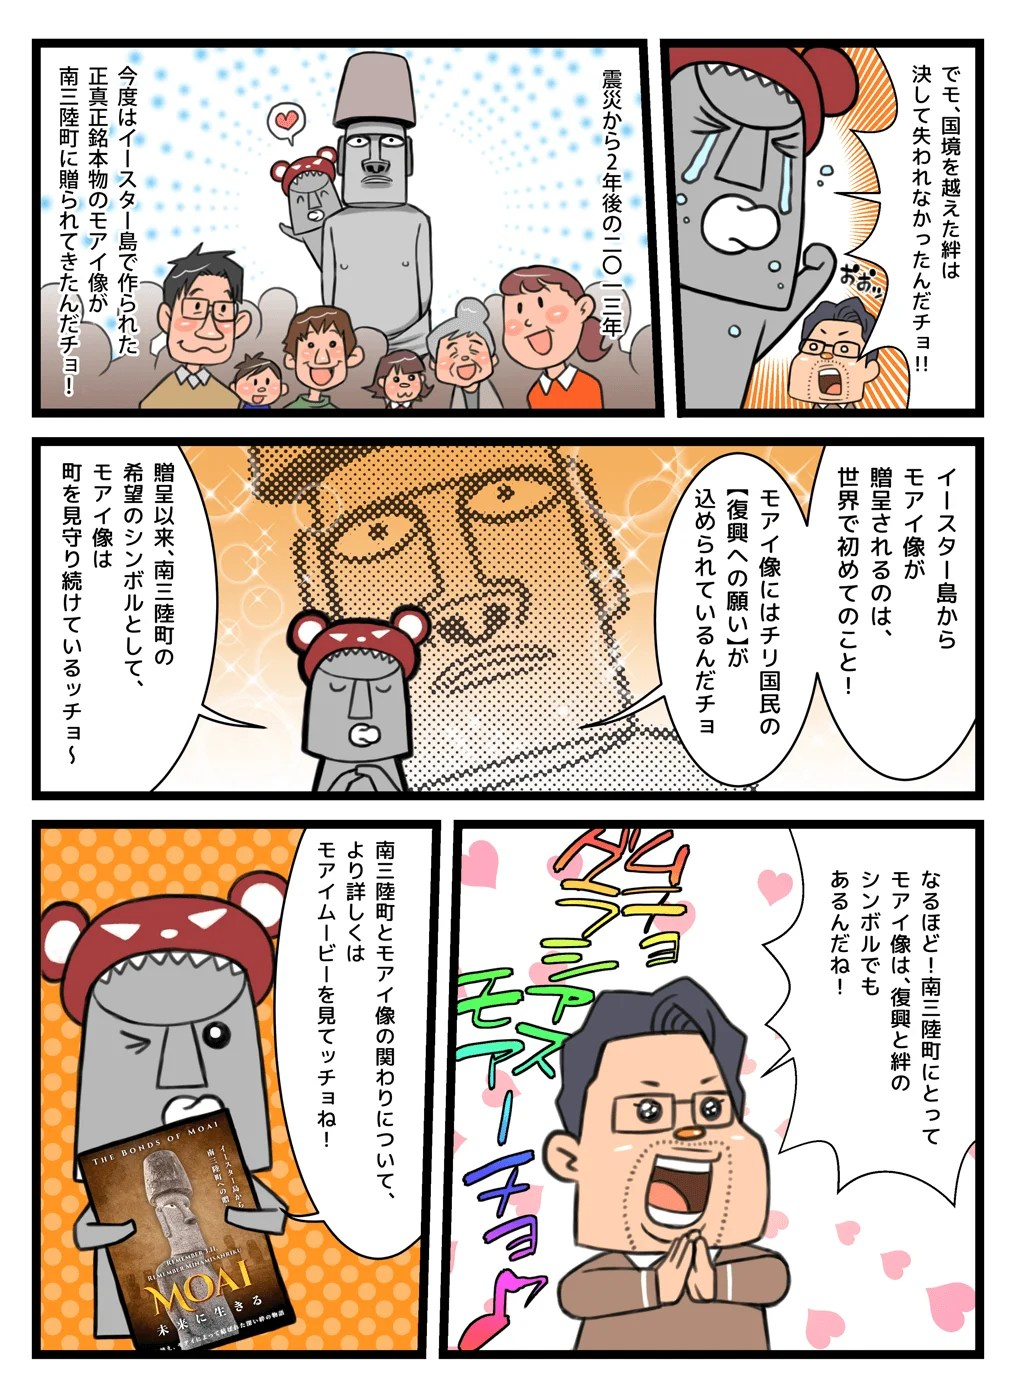 漫画:南三陸町とモアイ像の関わり ページ2